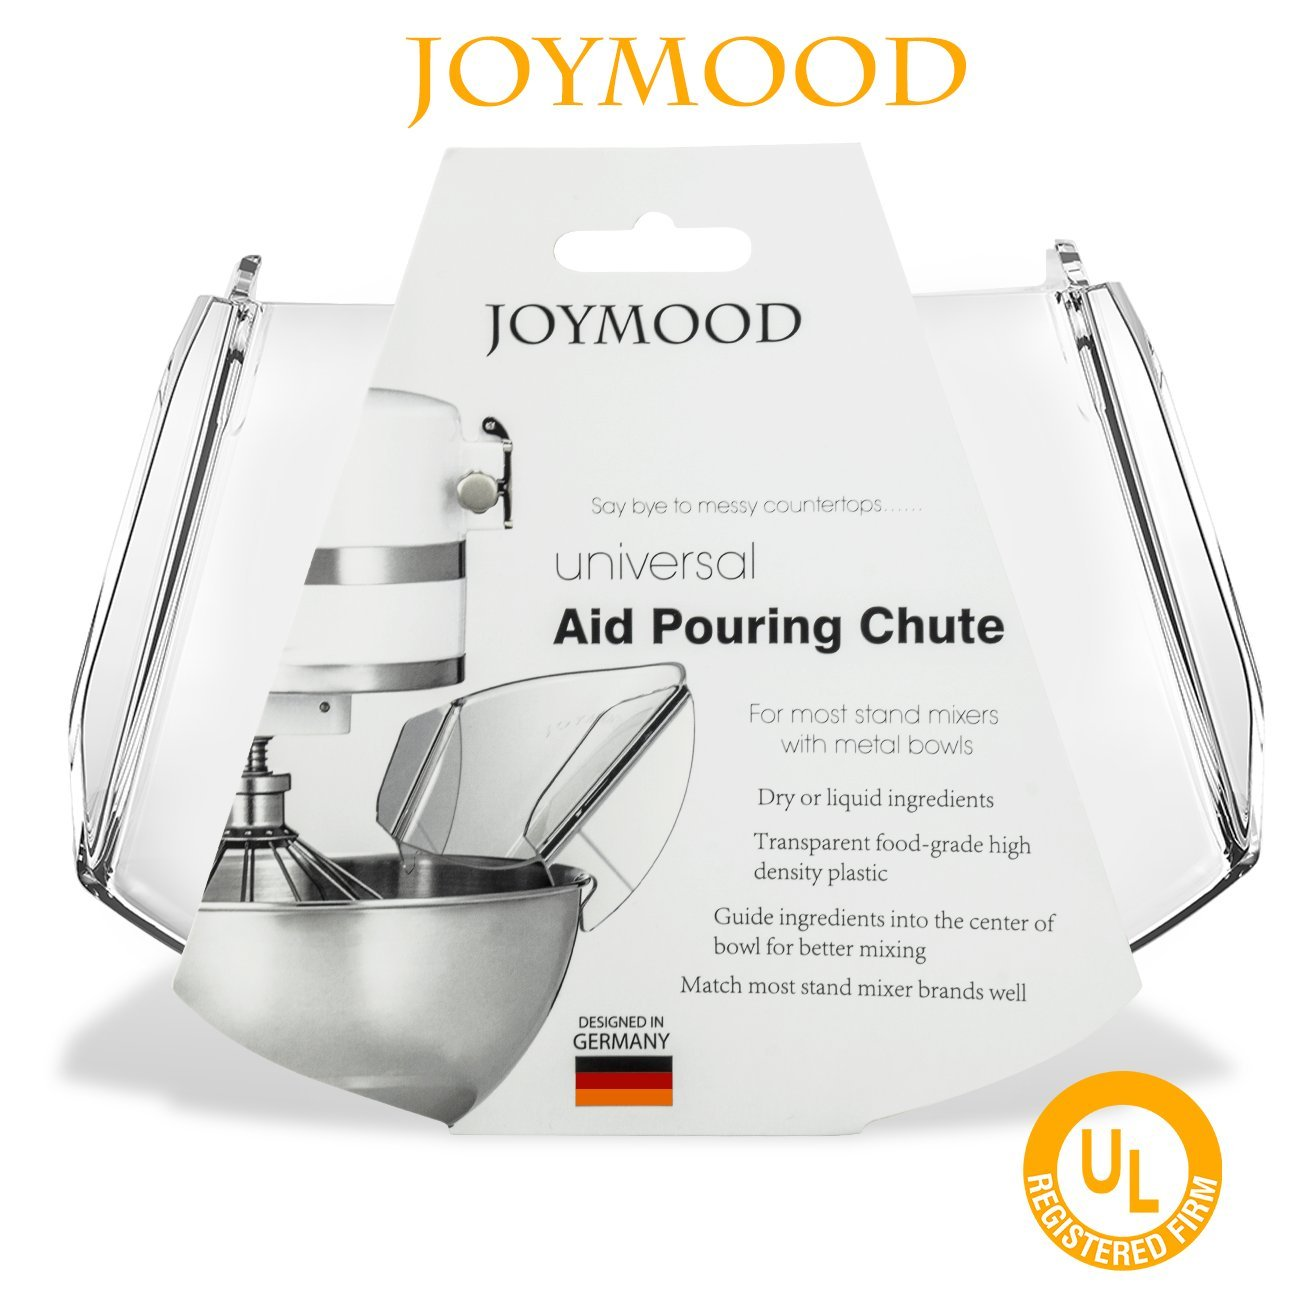 Pouring Shield, JOYMOOD Universal Pouring Chute for KitchenAid Bowl-Lift Stand Mixer Attachment/Accessories by JOYMOOD (Image #6)